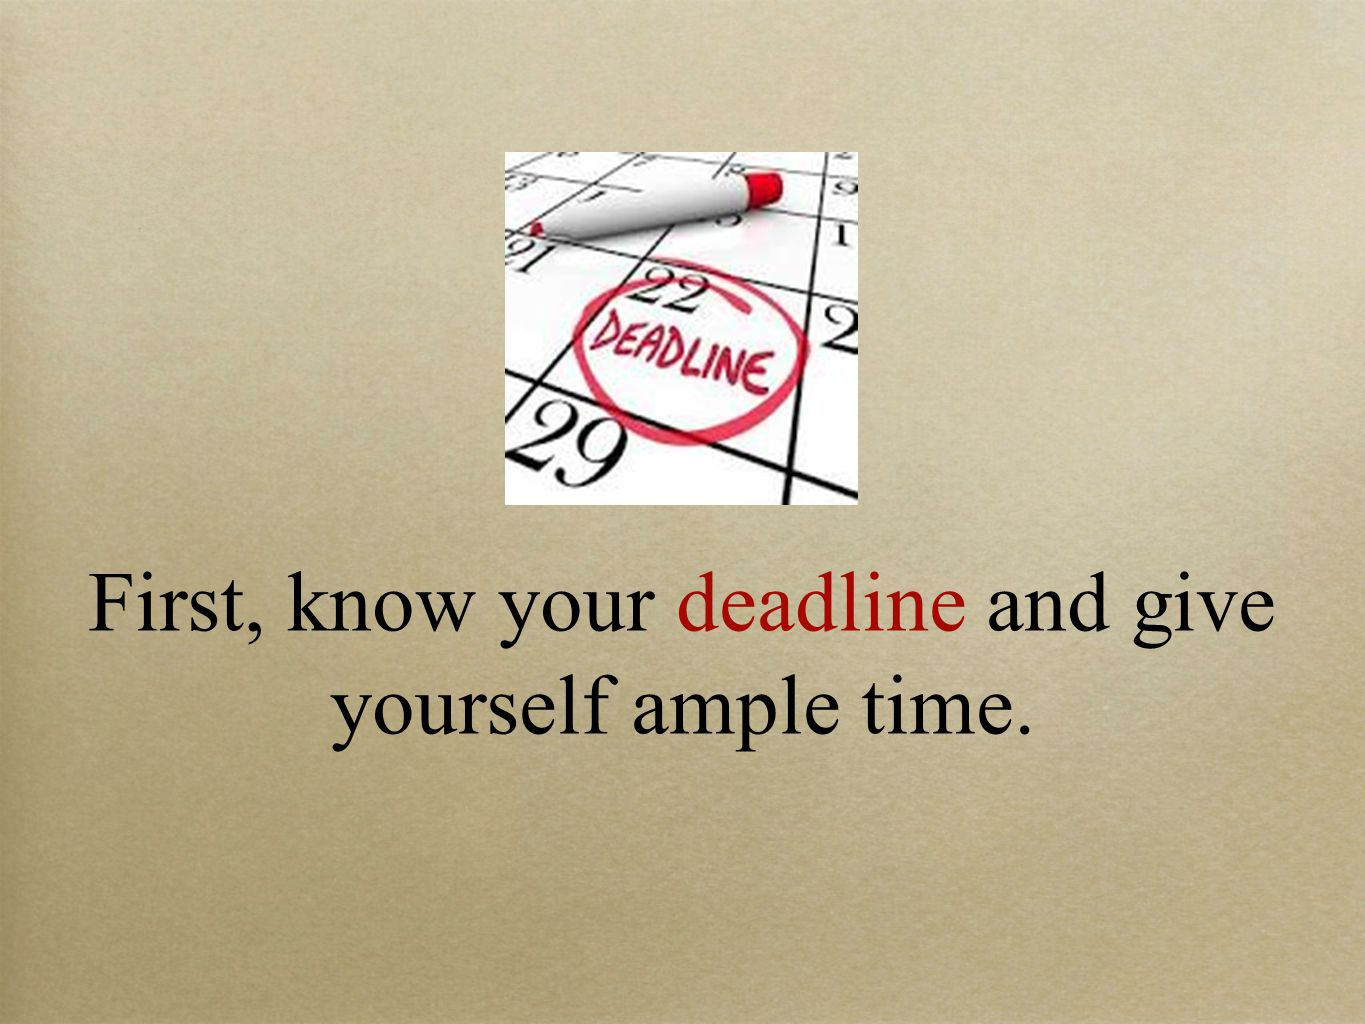 First, know your deadline and give yourself ample time.